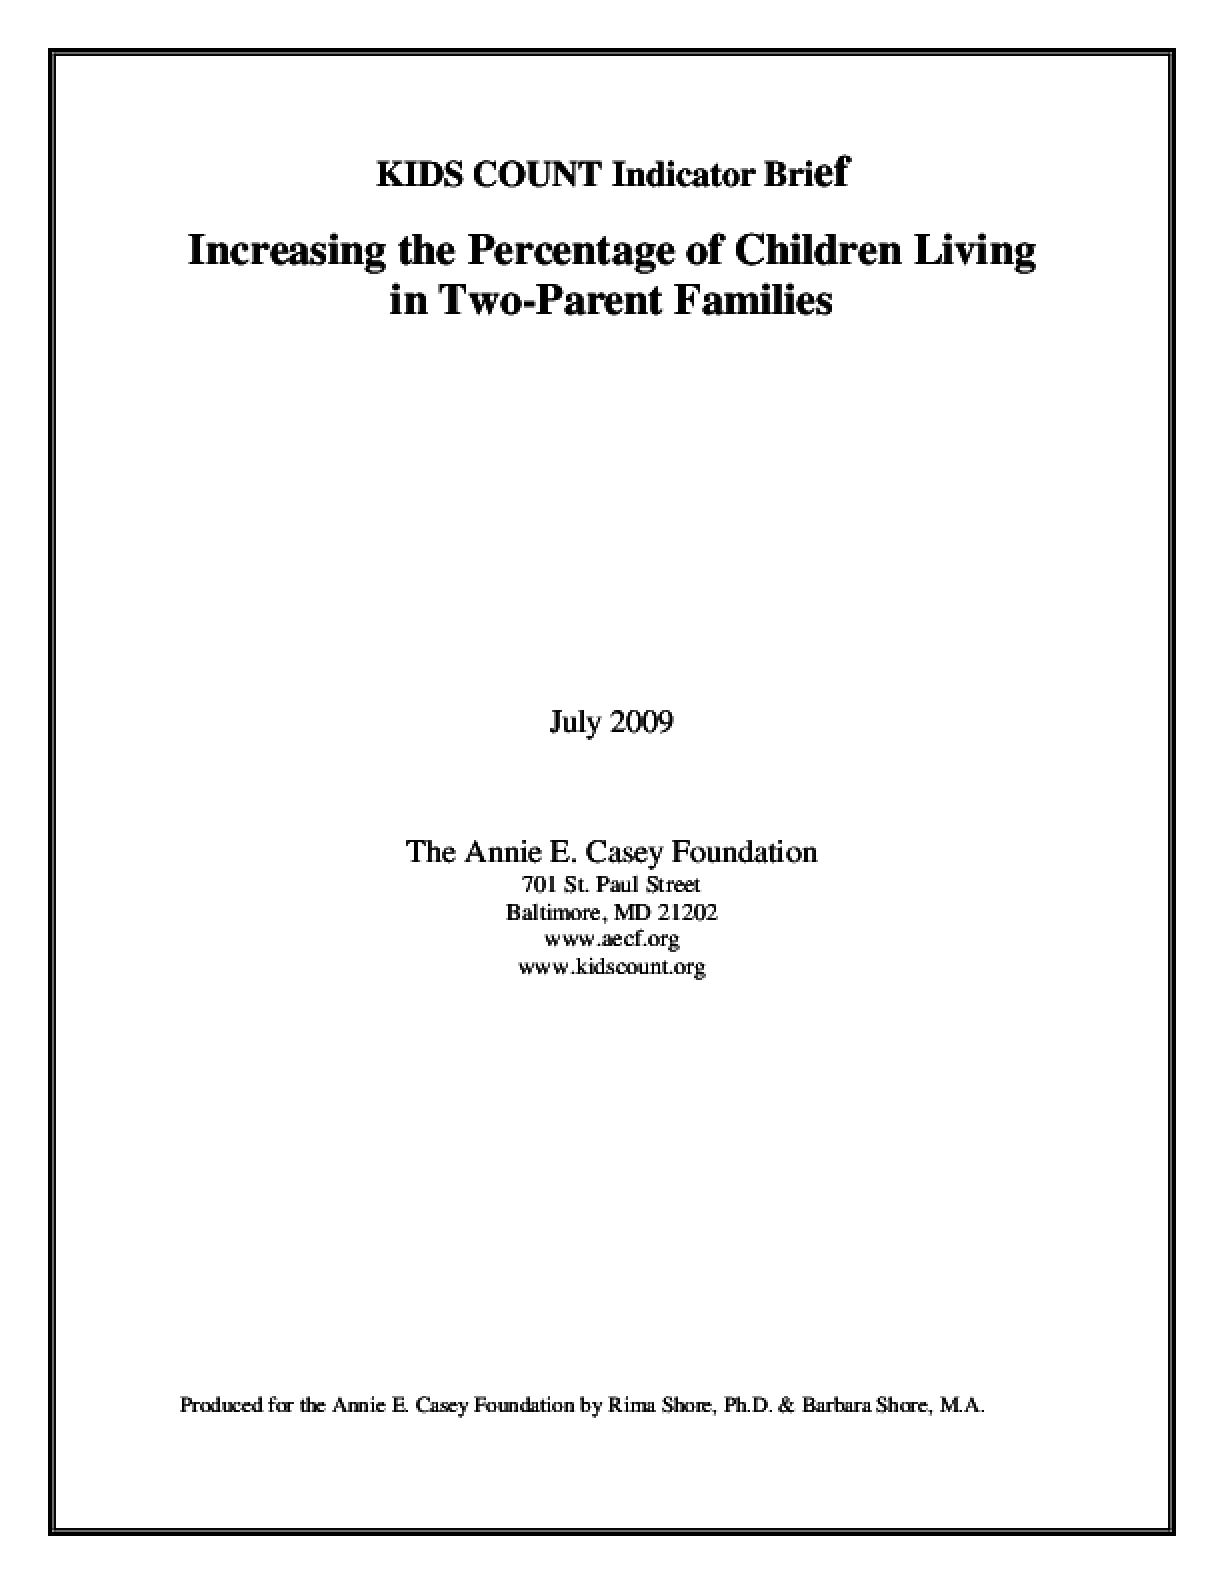 KIDS COUNT Indicator Brief: Increasing the Percentage of Children Living in Two-Parent Families